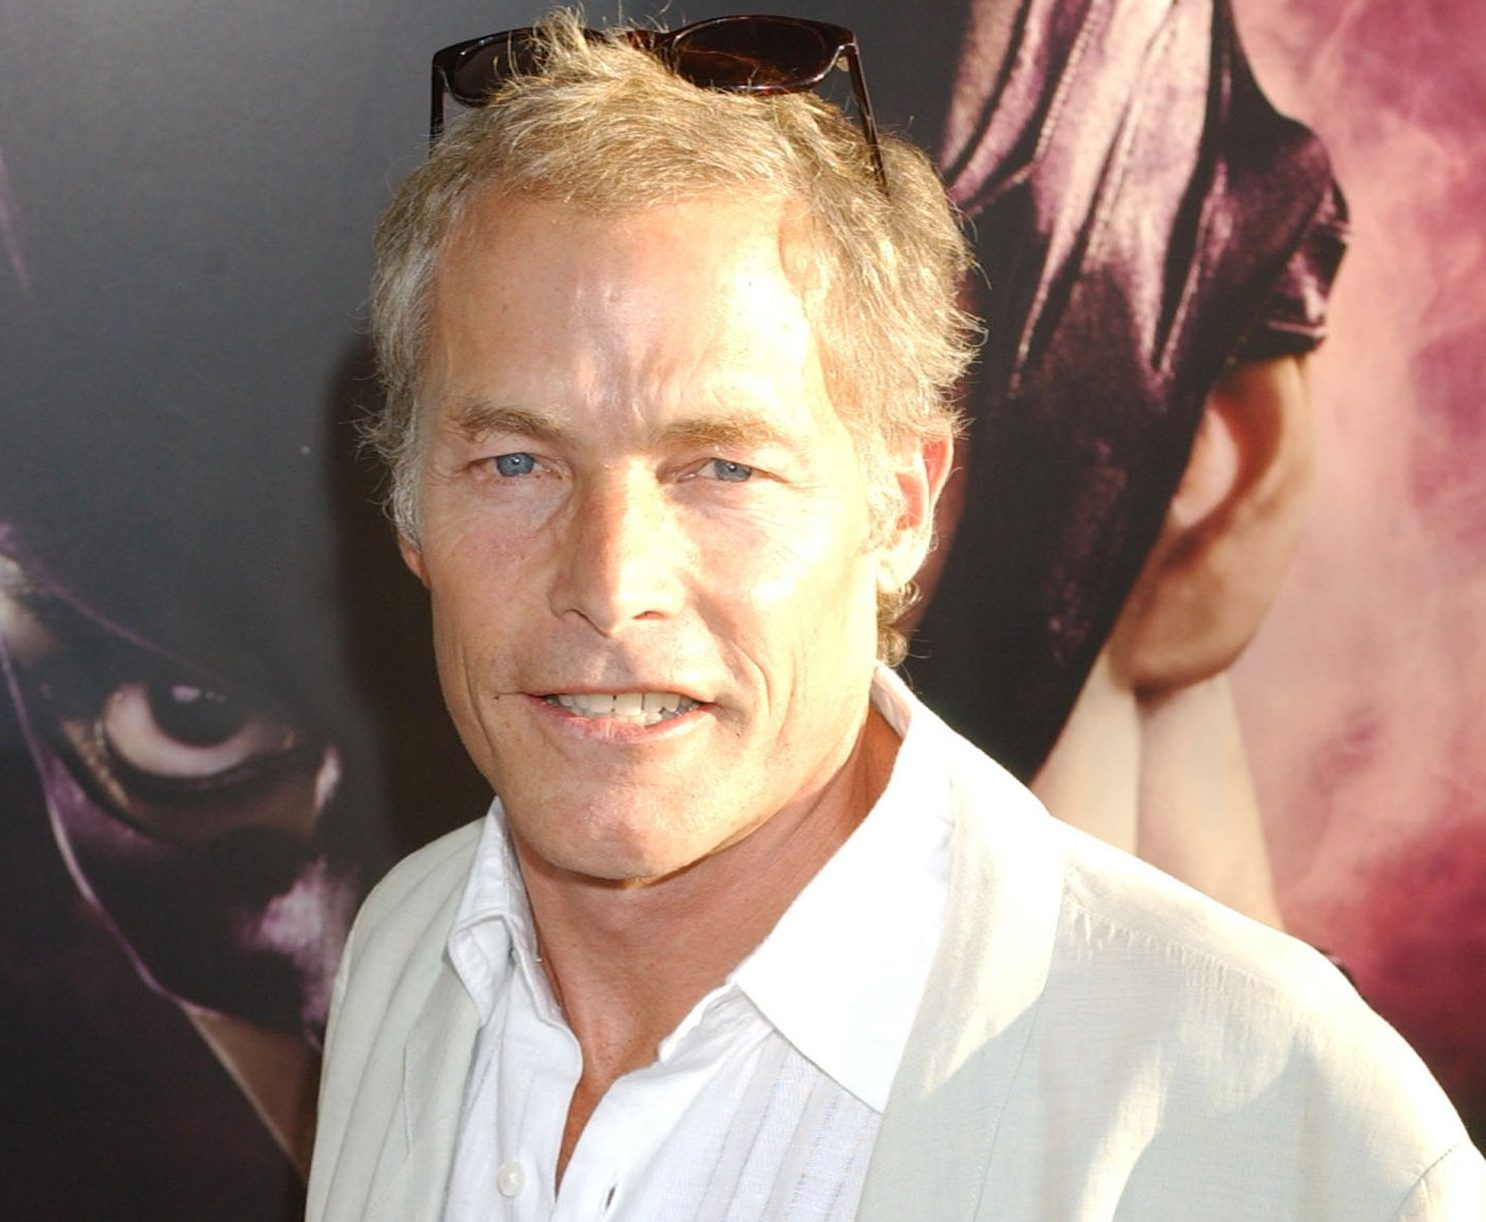 michael massee 8c872f8f 9b2c 48c4 933d e930a54f10df e1613485217823 30 Haunting Facts About Brandon Lee's The Crow